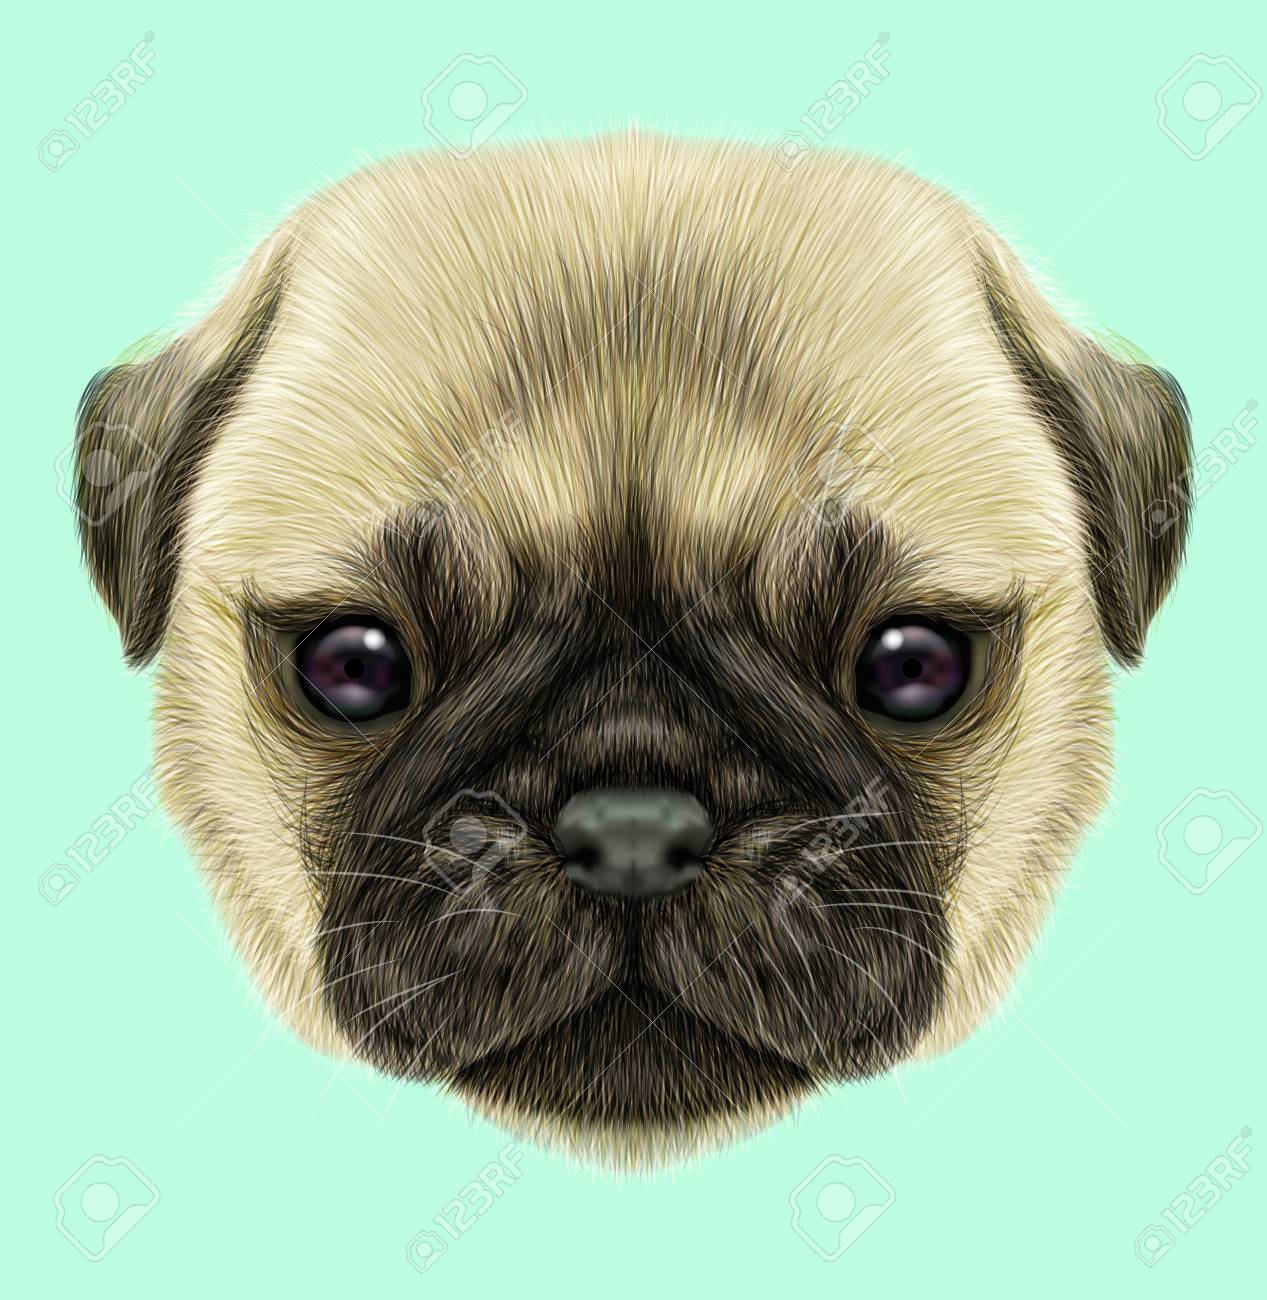 Illustrated Portrait Of Pug Puppy Cute Fluffy Fawn Face Of Domestic Stock Photo Picture And Royalty Free Image Image 75937024